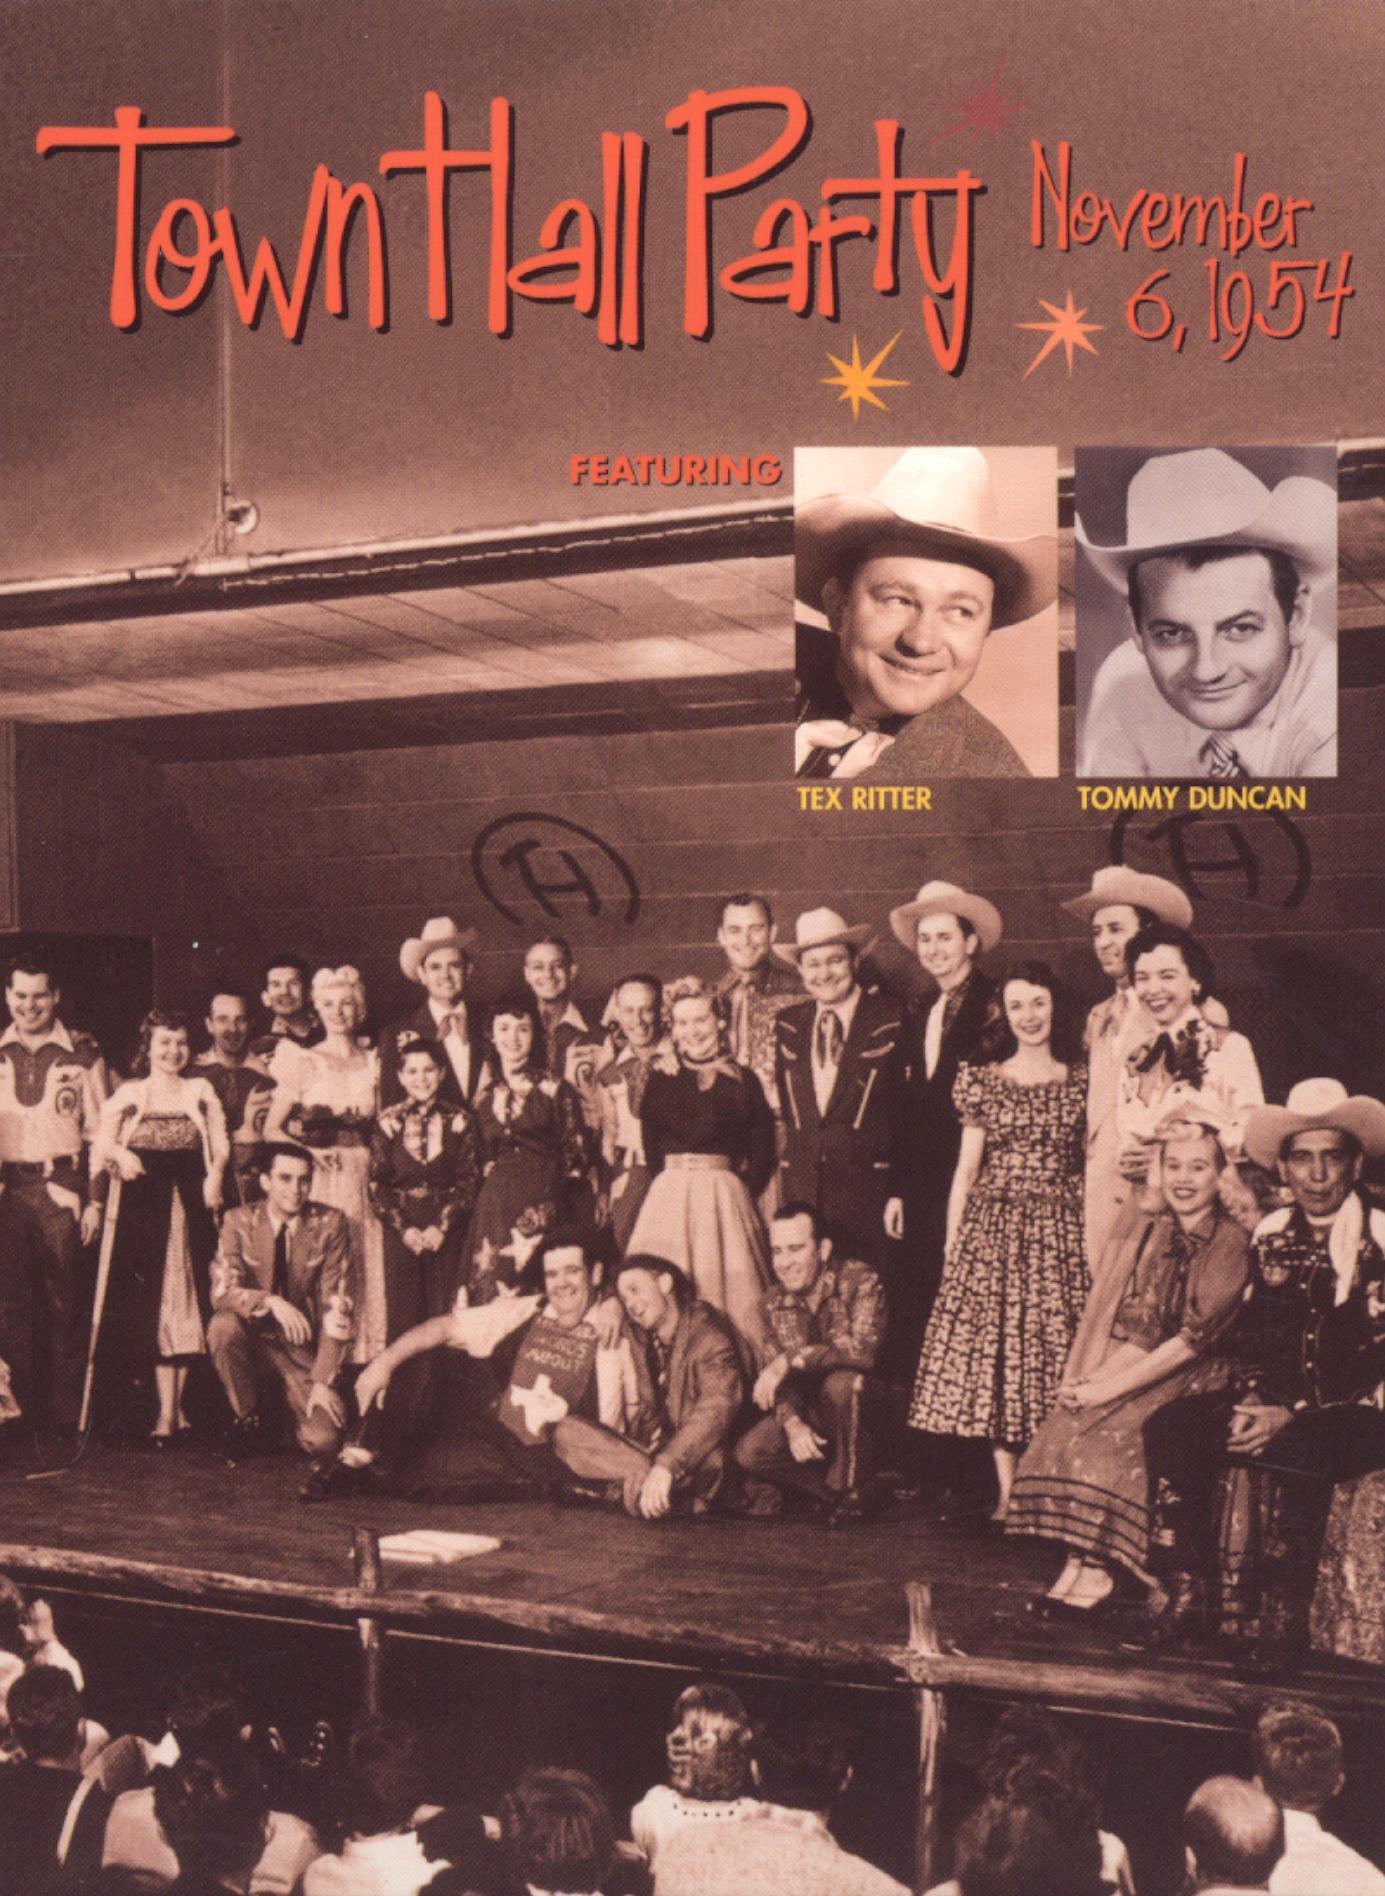 Town Hall Party: November 6, 1954